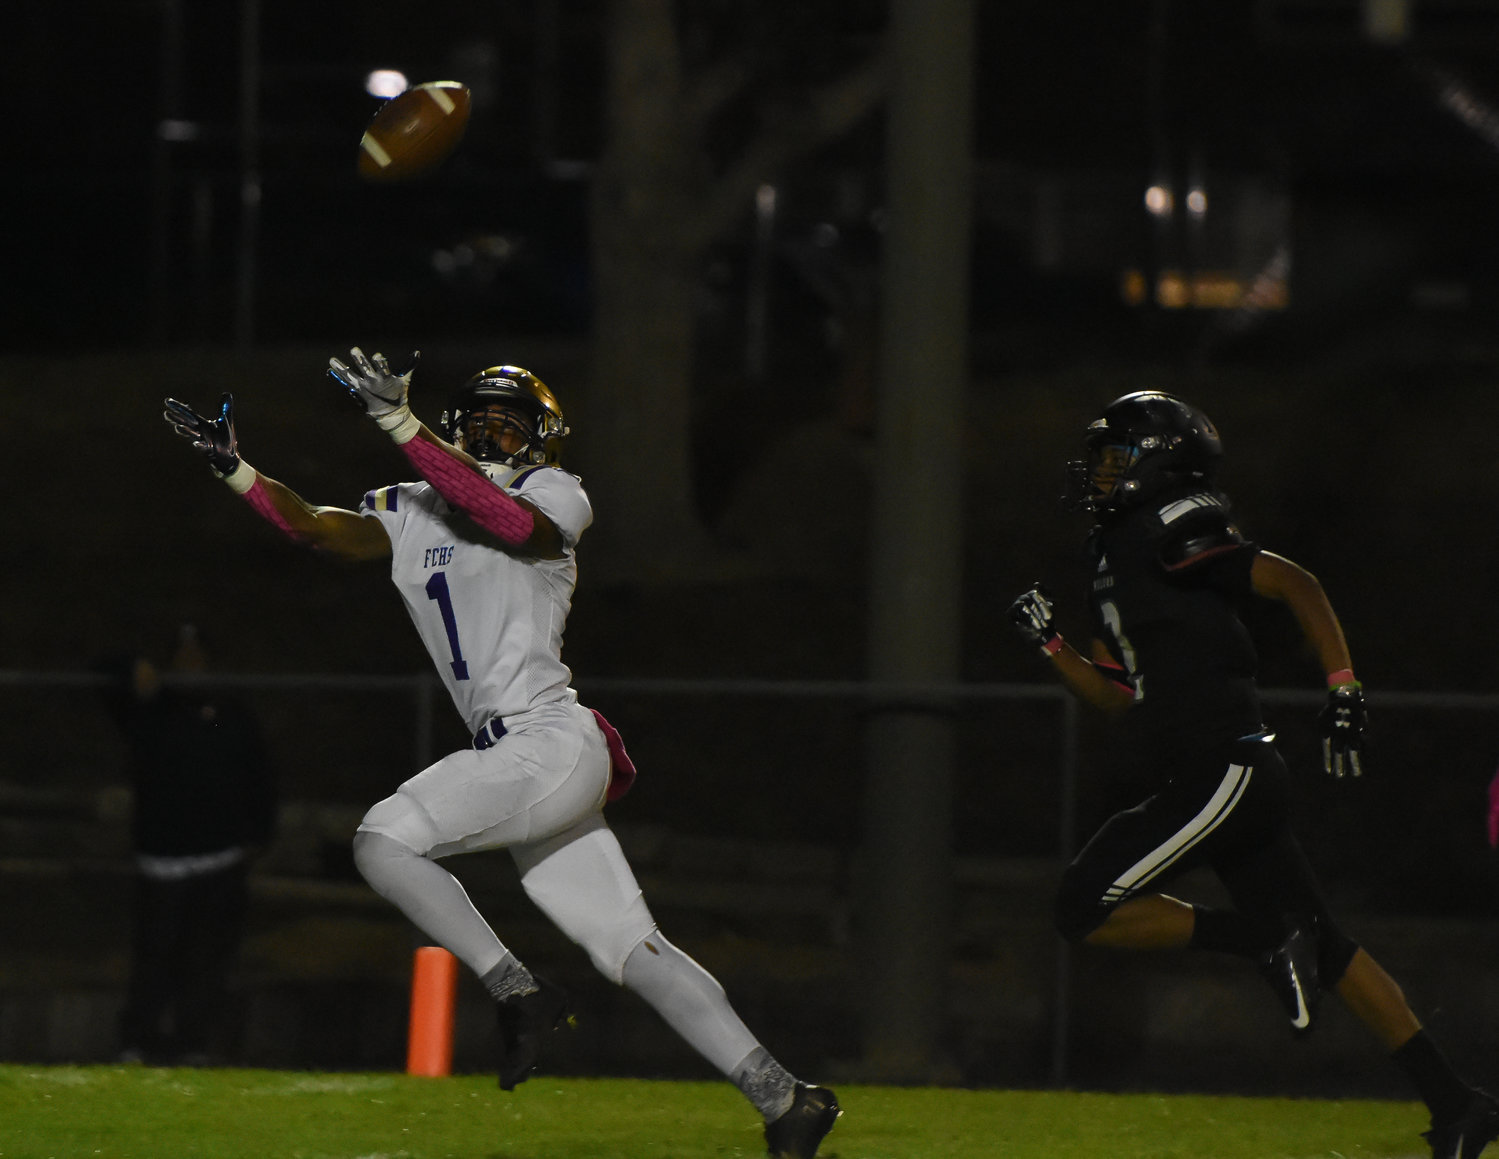 Fort Collins' Dorion McGarity, left, gets behind Westminster's Quentin Watson to catch a first-quarter touchdown pass Oct. 1 at Memorial Stadium. The Wolves rallied from a 28-12 halftime deficit to get within three points (35-32) early in the third quarter but scored no more, losing 56-32.